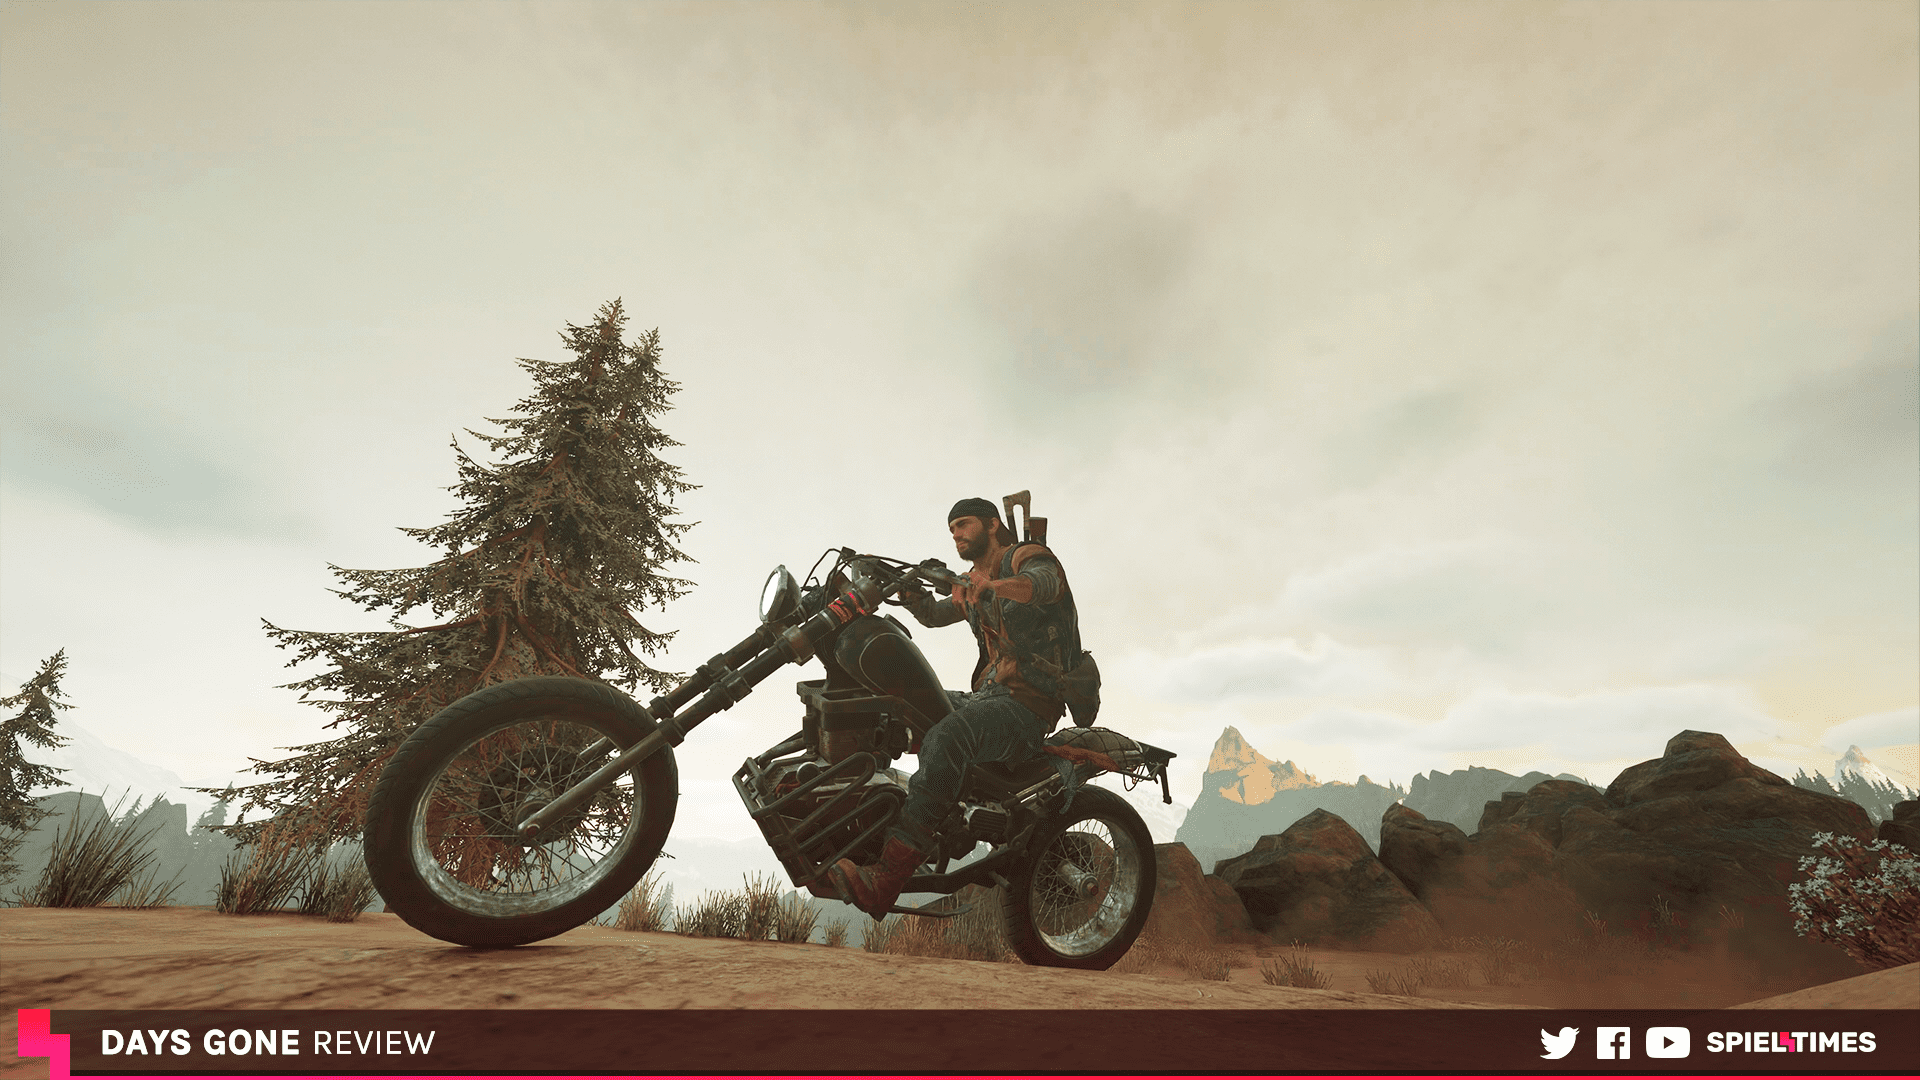 Days Gone Review - Spiel Times